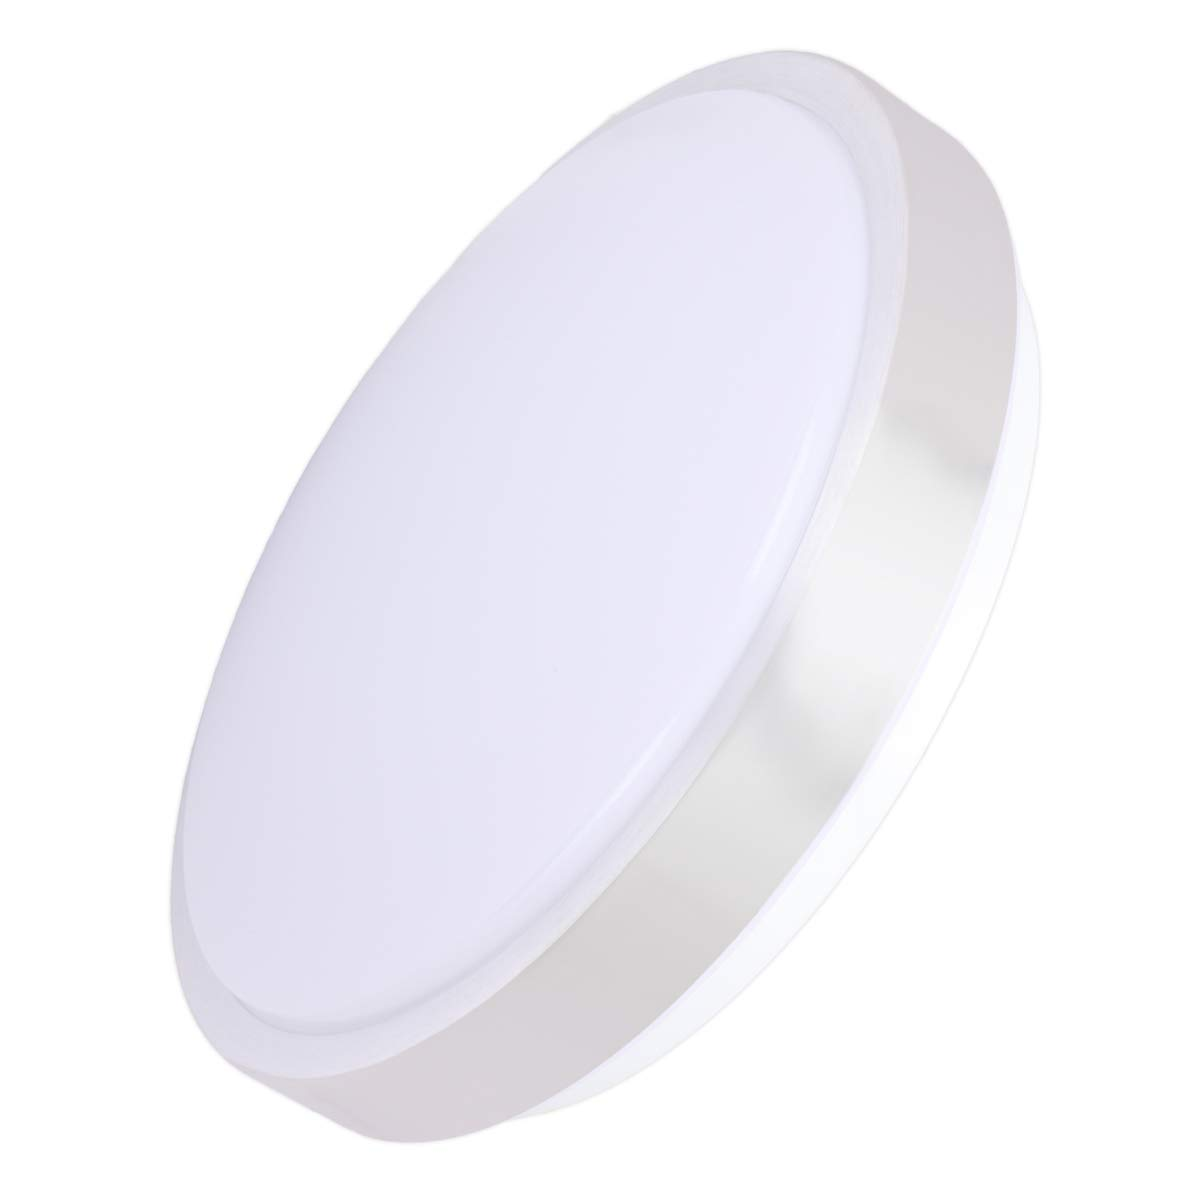 Drosbey 15W LED Flush Mount Ceiling Light, Mini Style 8in, 120W Incandescent Bulbs Equivalent, 1500 Lumens, 5000K Daylight White, Round Lighting Fixture for Kitchen, Hallway, Bathroom, Bedroom by Drosbey